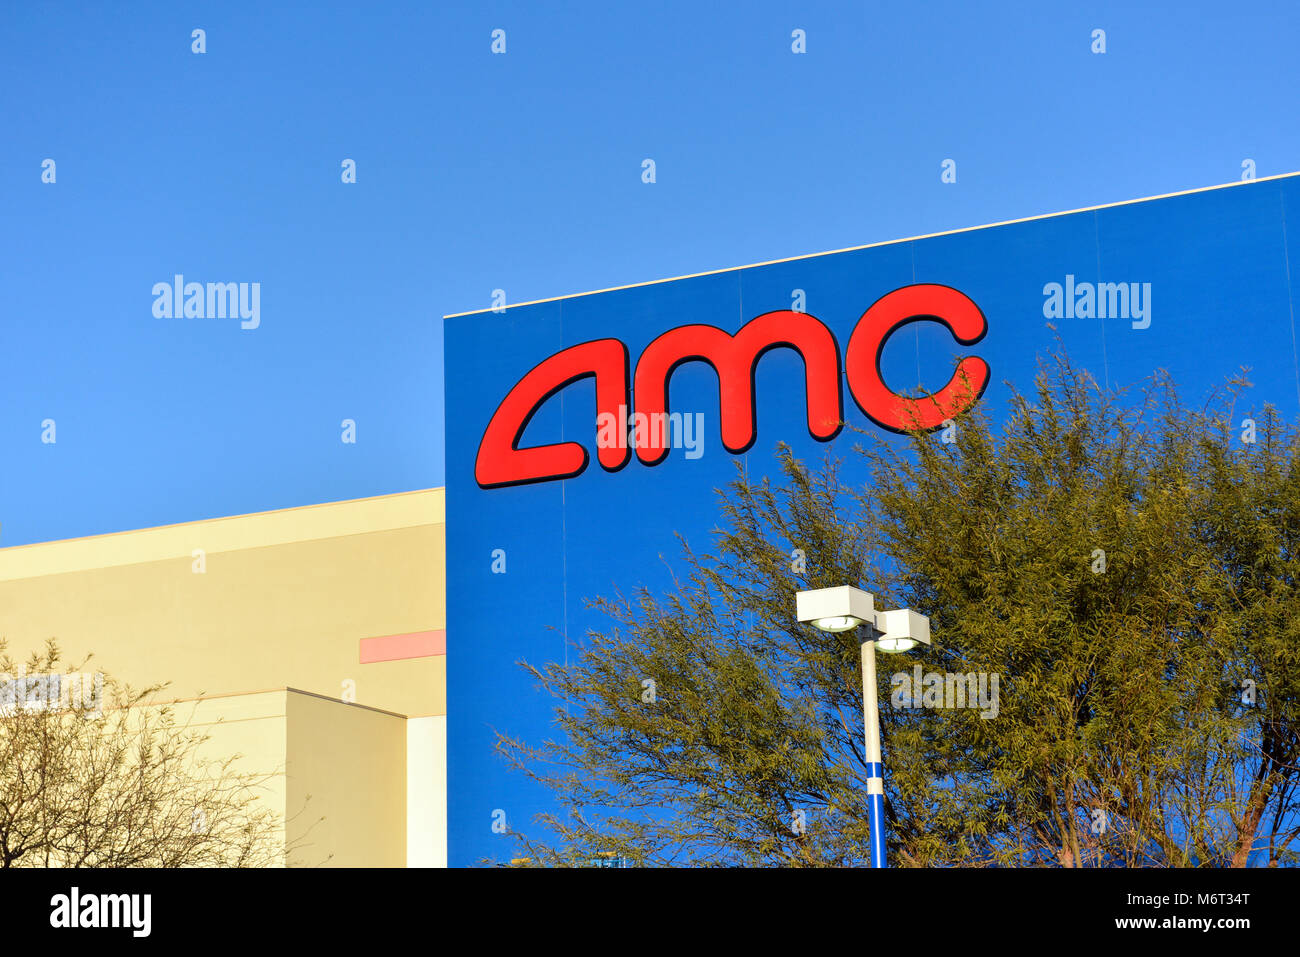 Exterior and sign of the AMC Town Center Movie Theater in Las Vegas, Nevada. - Stock Image